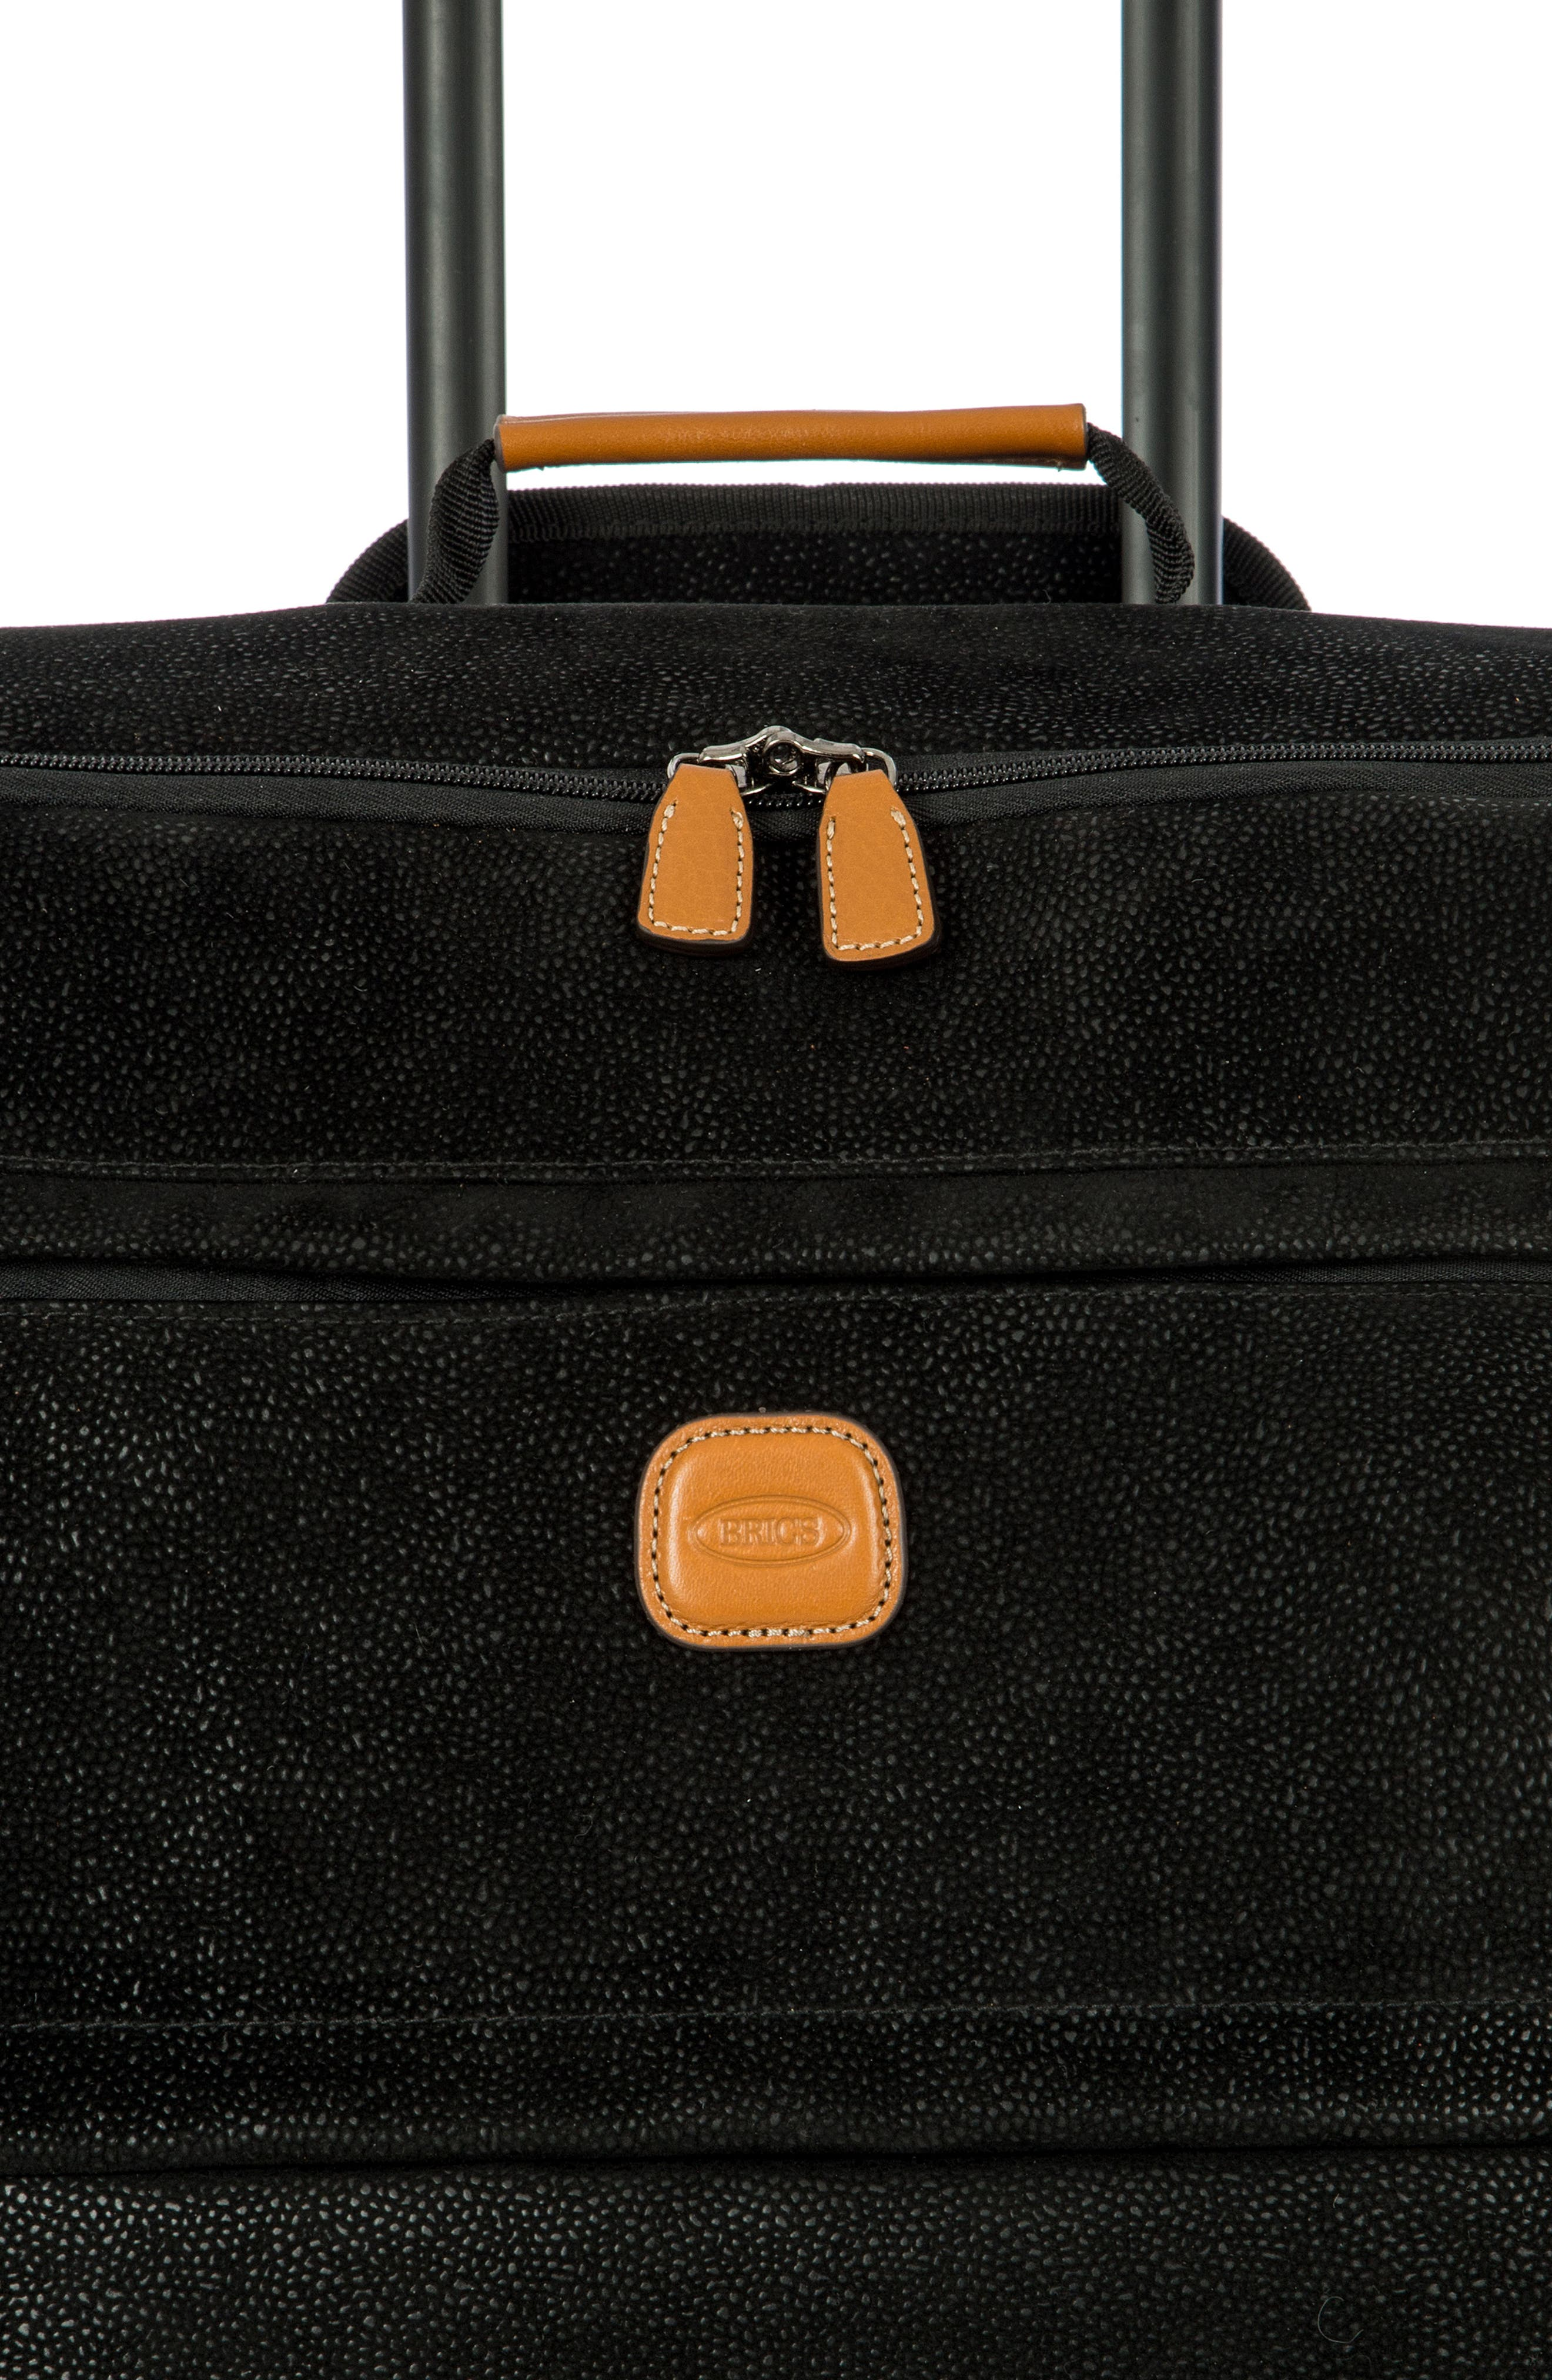 LIFE Collection 30-Inch Wheeled Suitcase,                             Alternate thumbnail 5, color,                             007